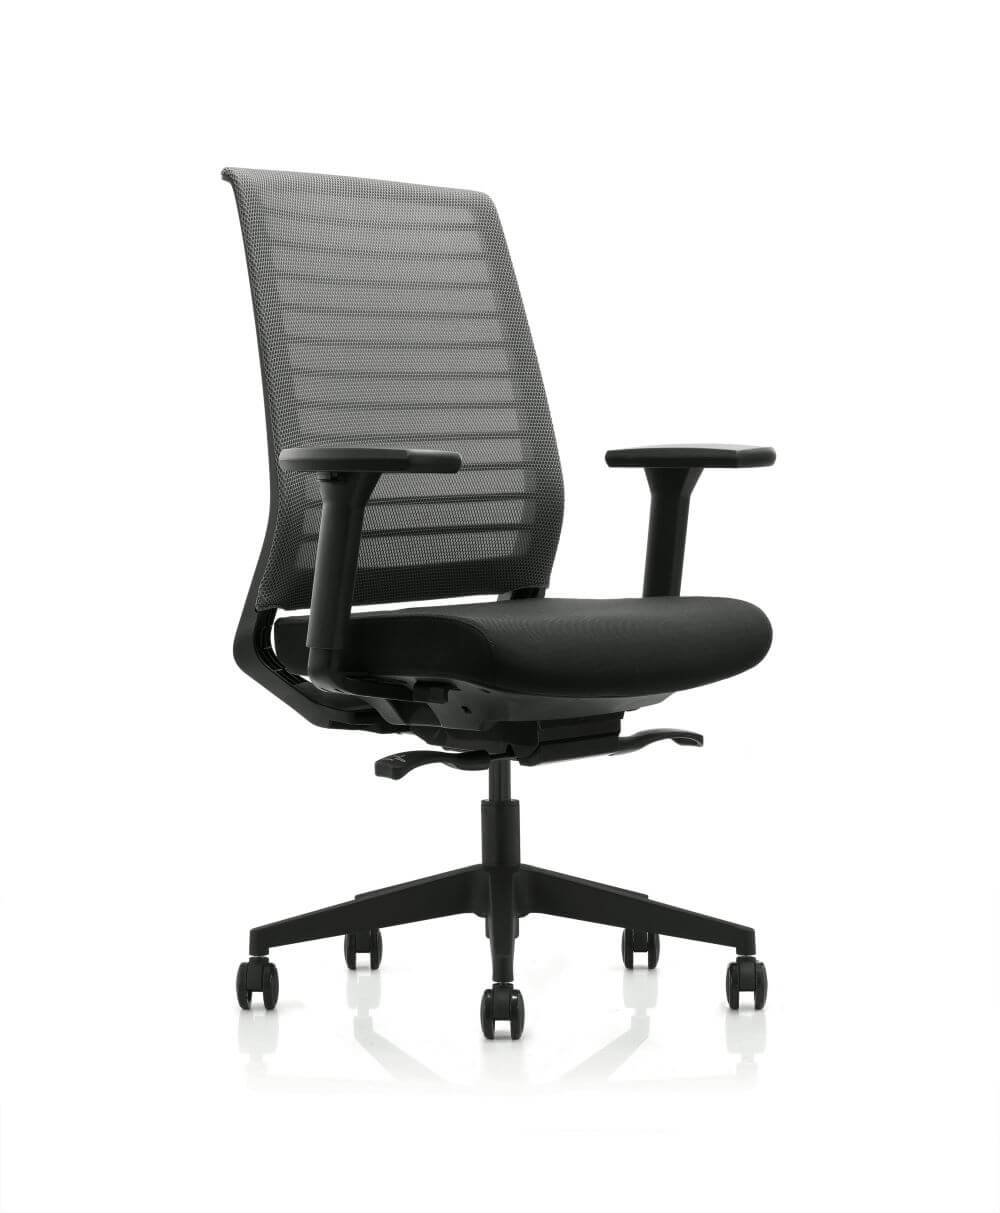 Horizon front 45 degree view, in black with mesh back, seat pad, 5 star base and castors